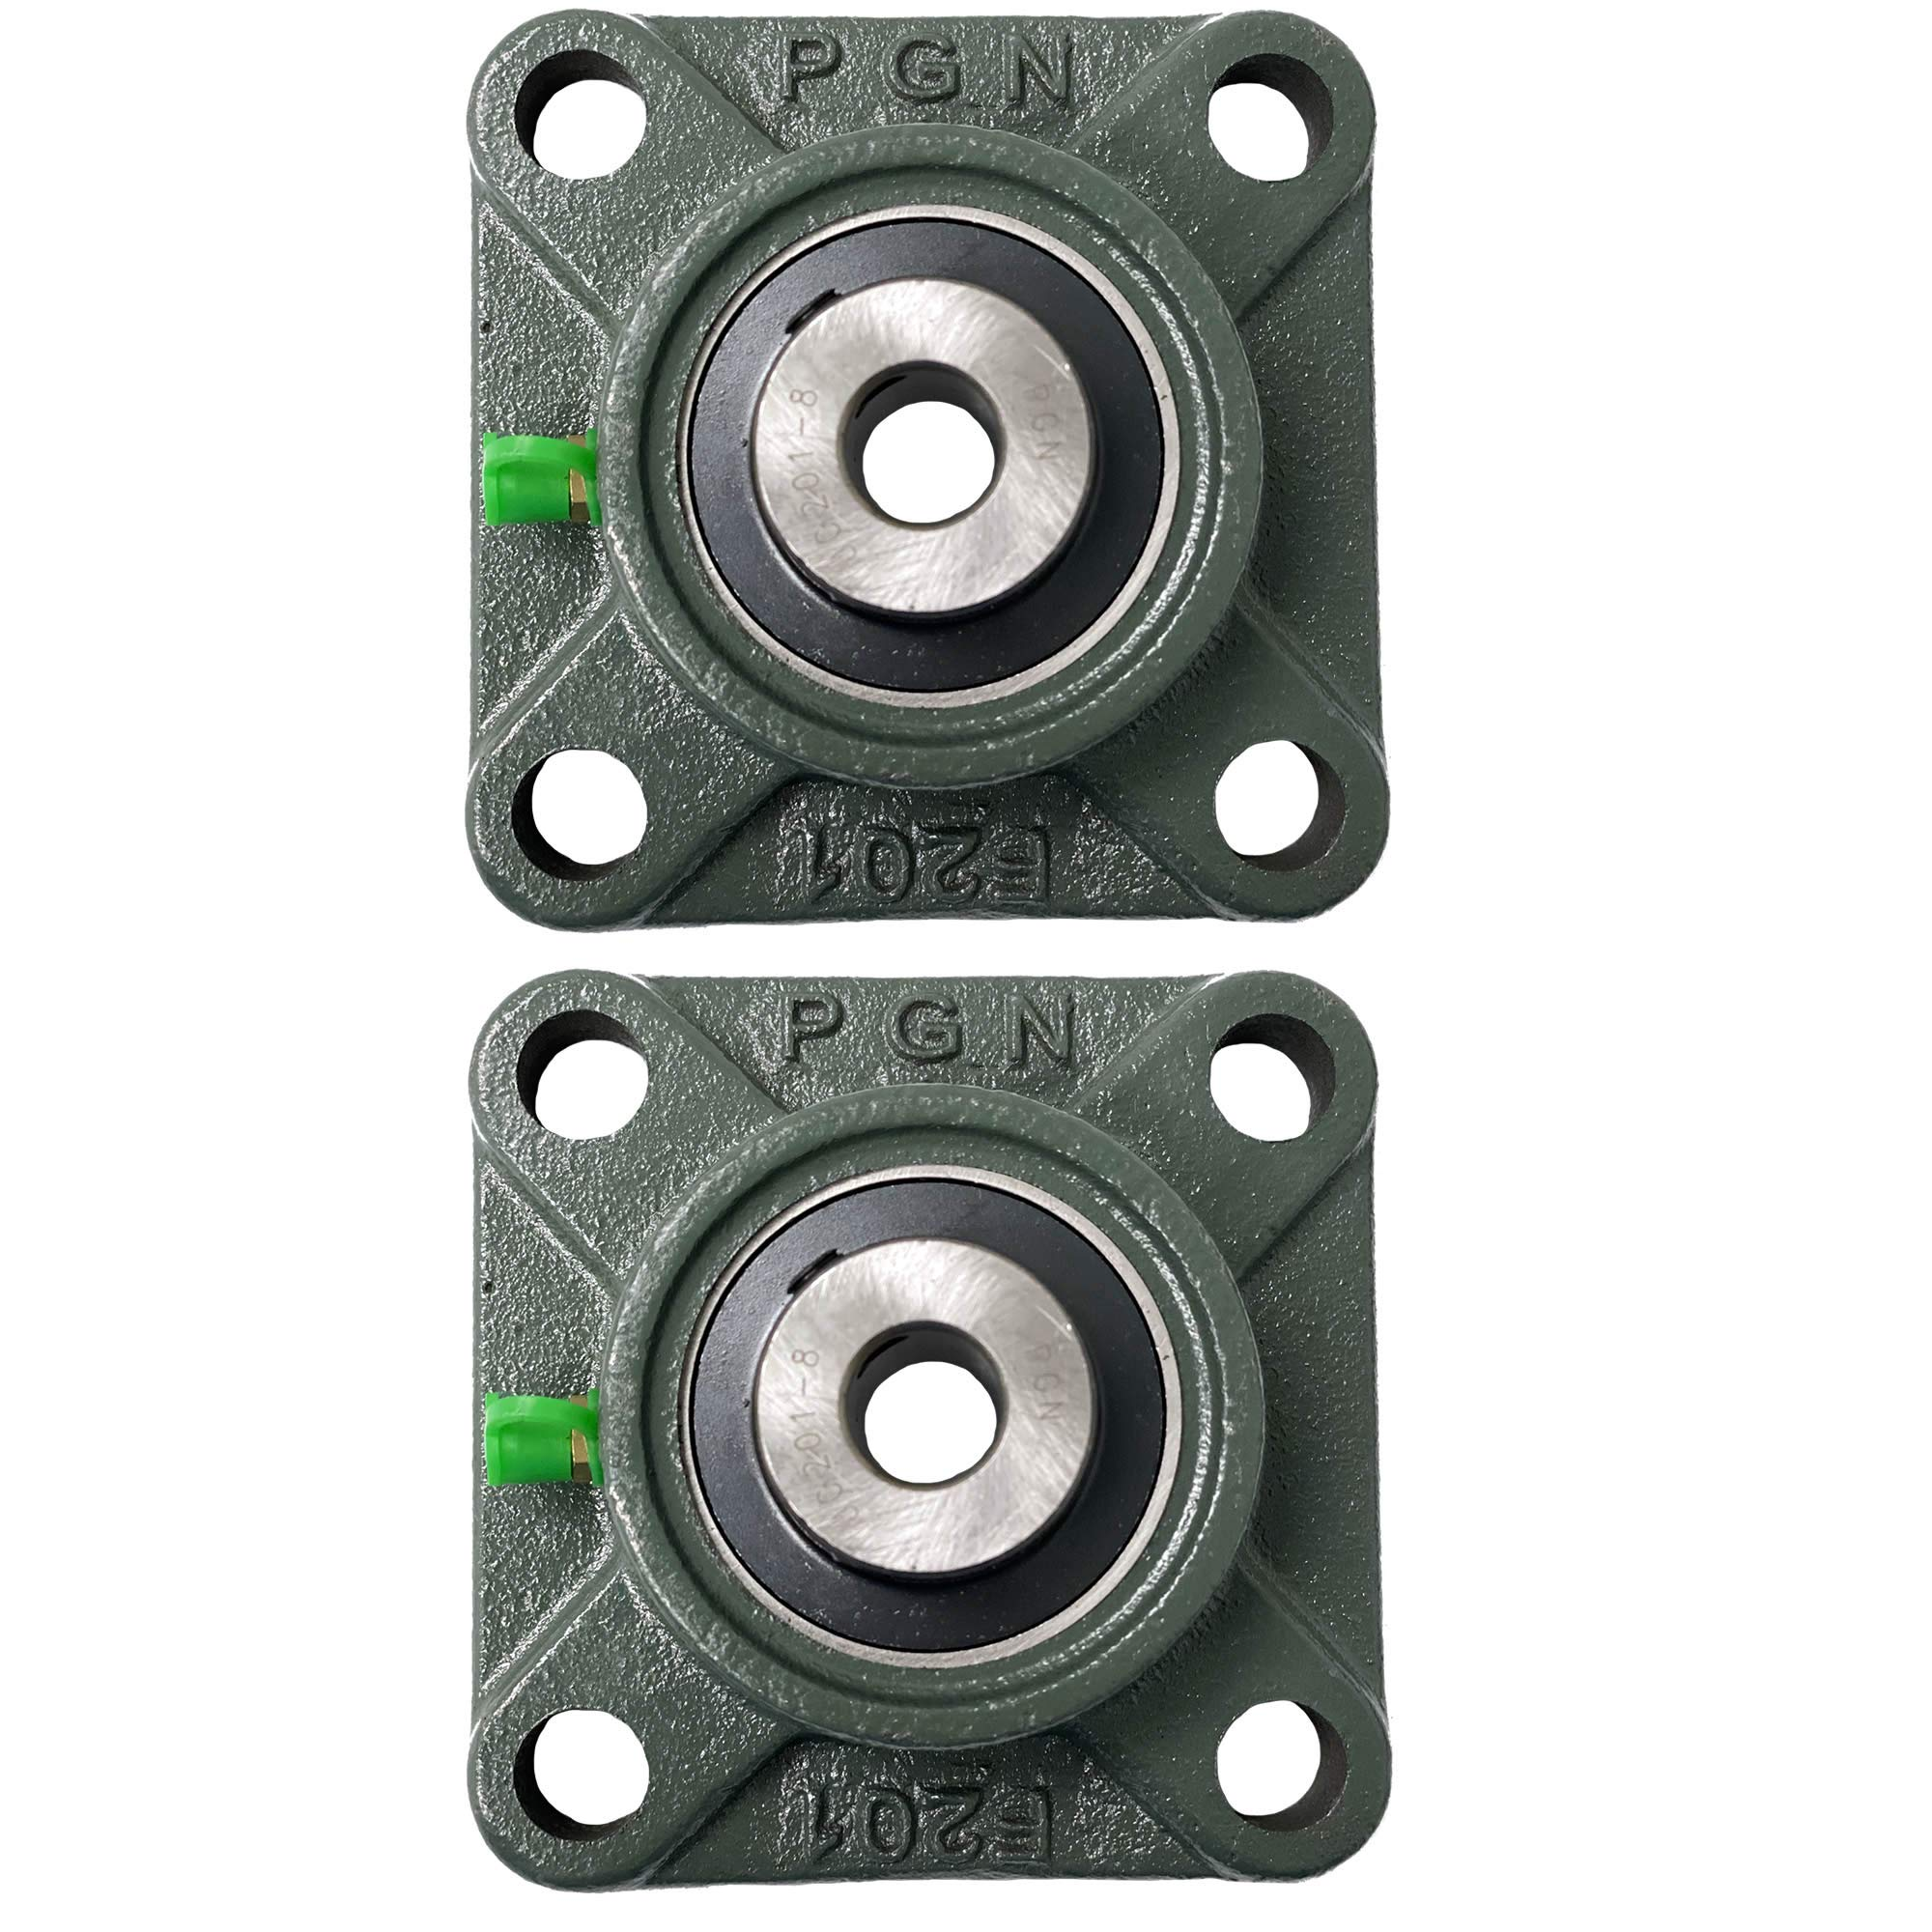 "PGN - UCF201-8 Pillow Block Square Flange Mounted Bearing 1/2"" Bore (2 PCS)"